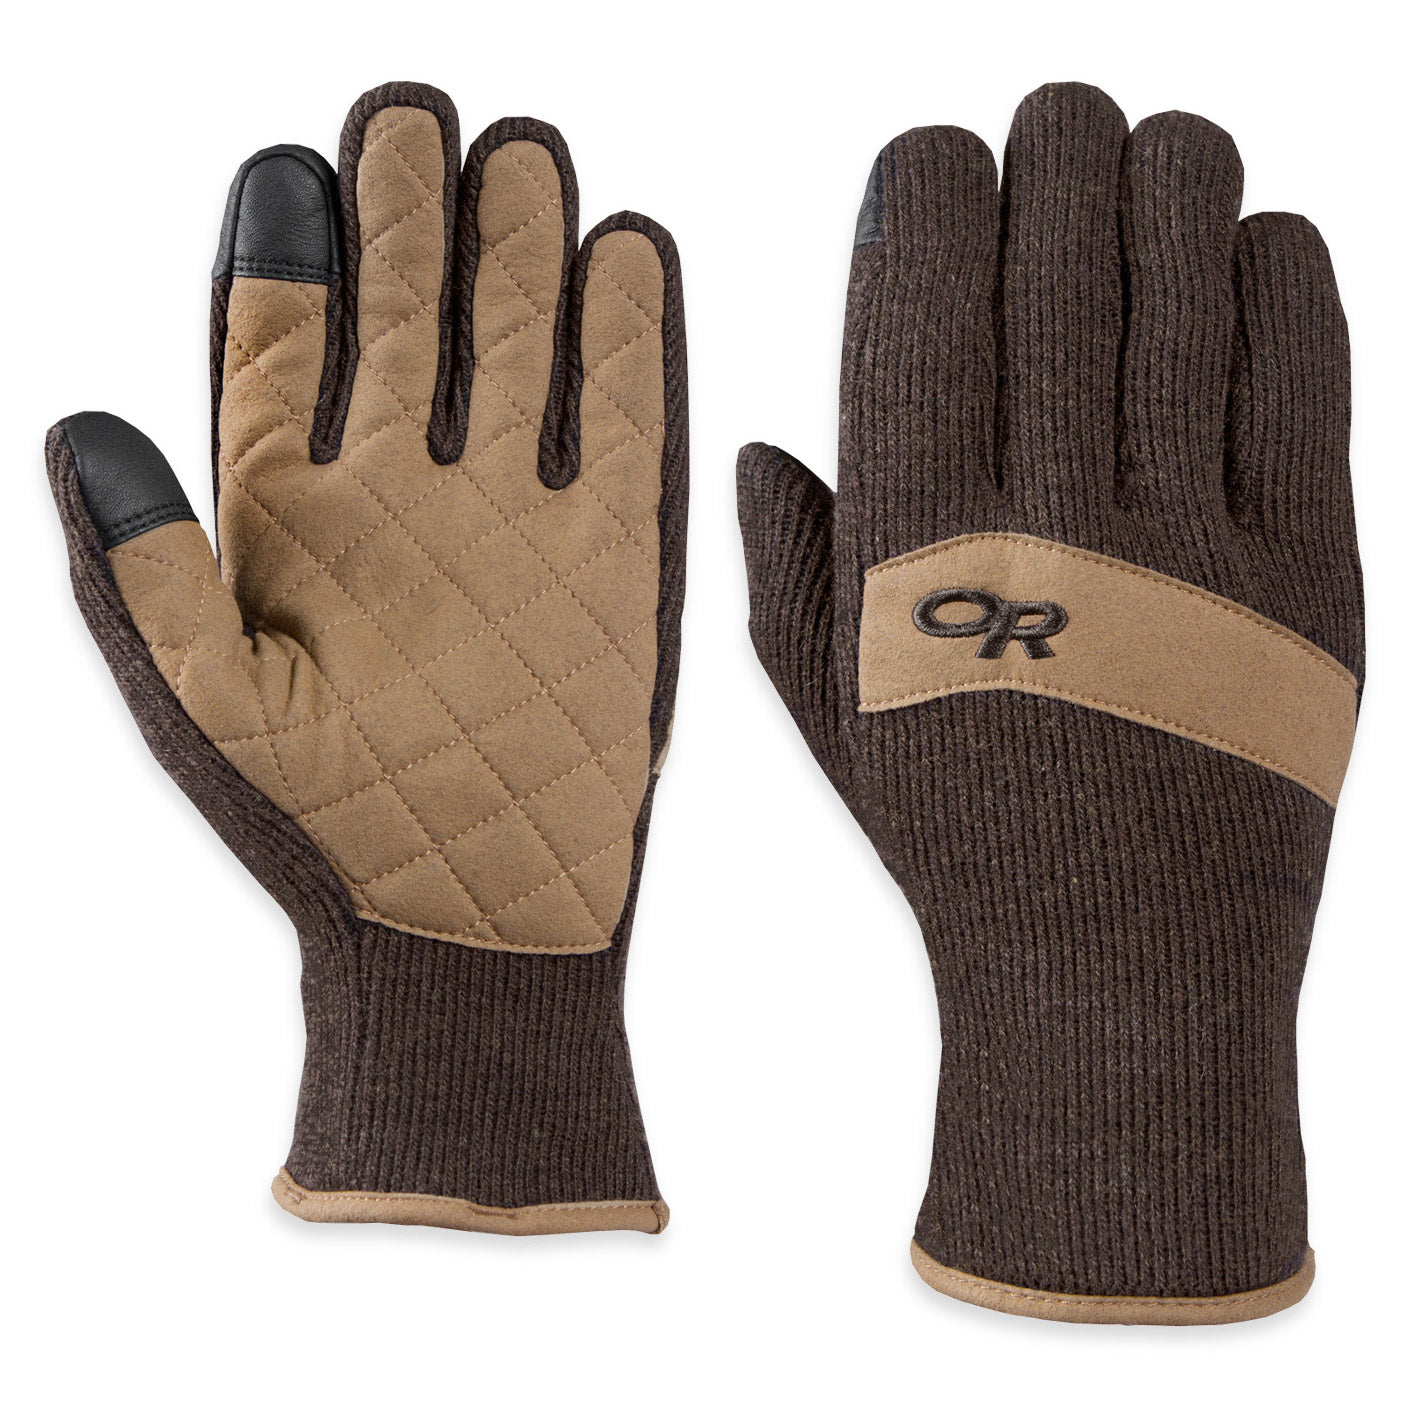 outdoor research exit sensor gloves front and back view in light and dark brown